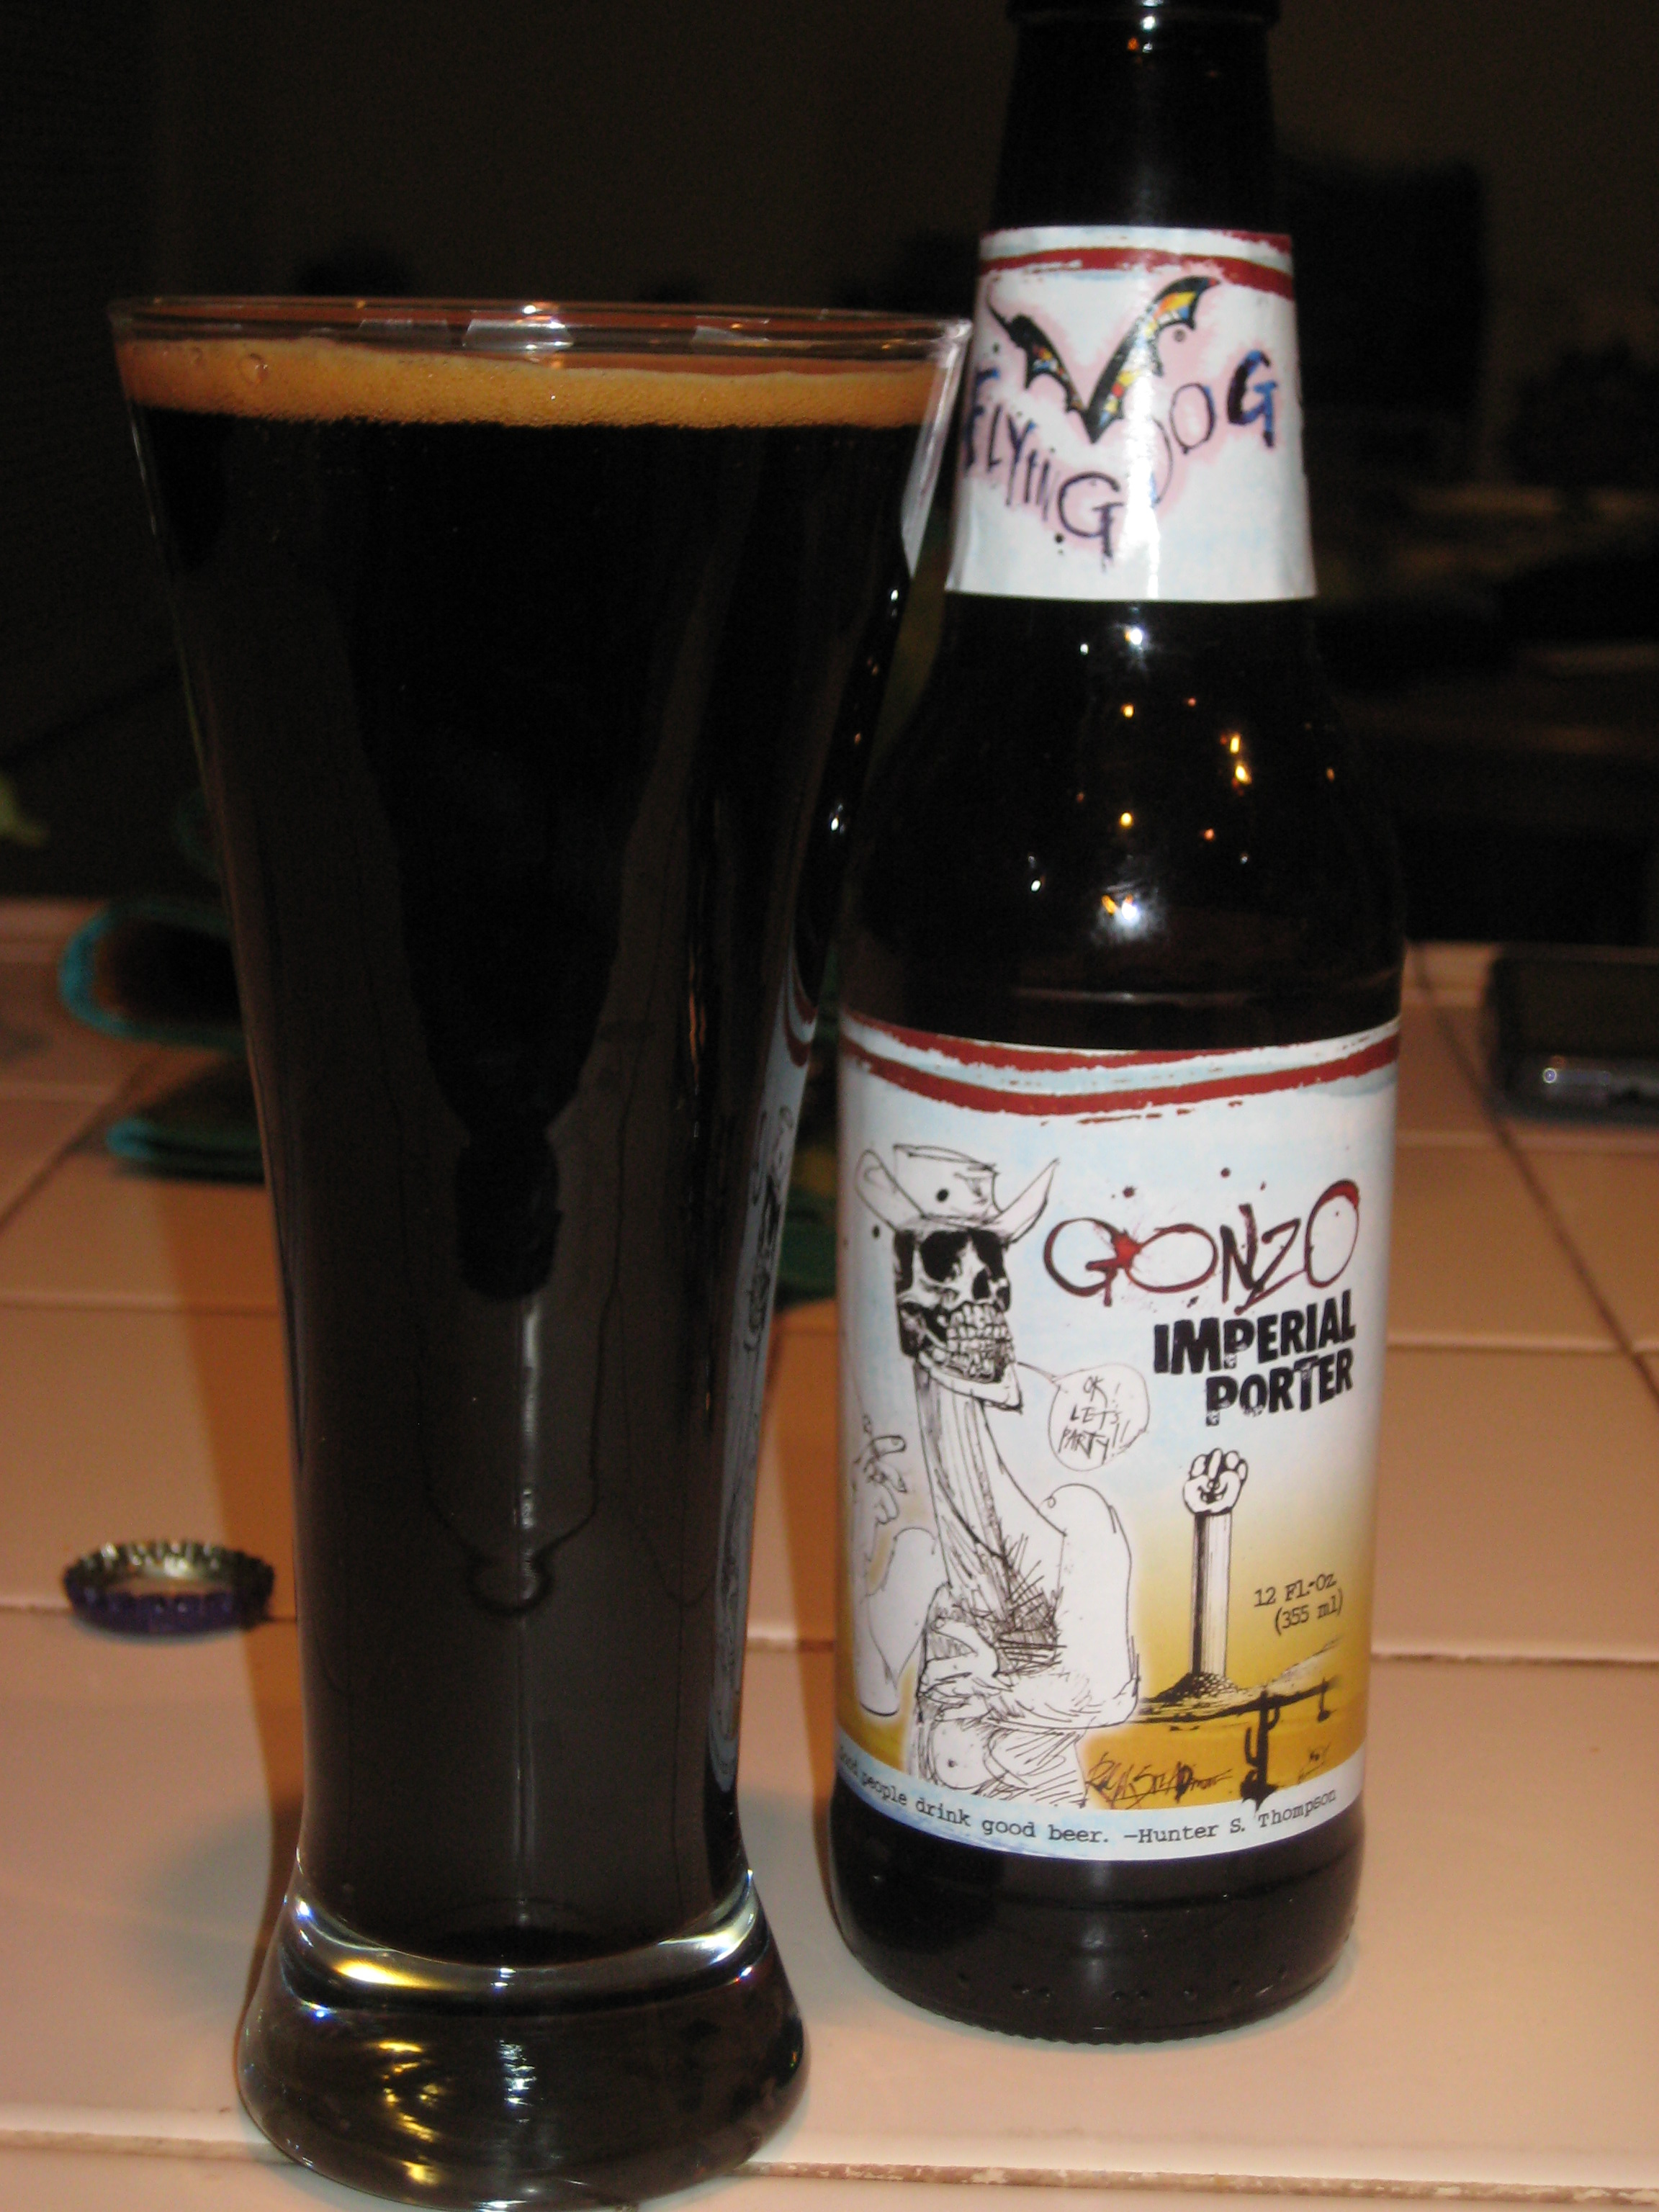 Le Meilleur Beer Of The Week 22 Gonzo Imperial Porter • False B Logic Ce Mois Ci